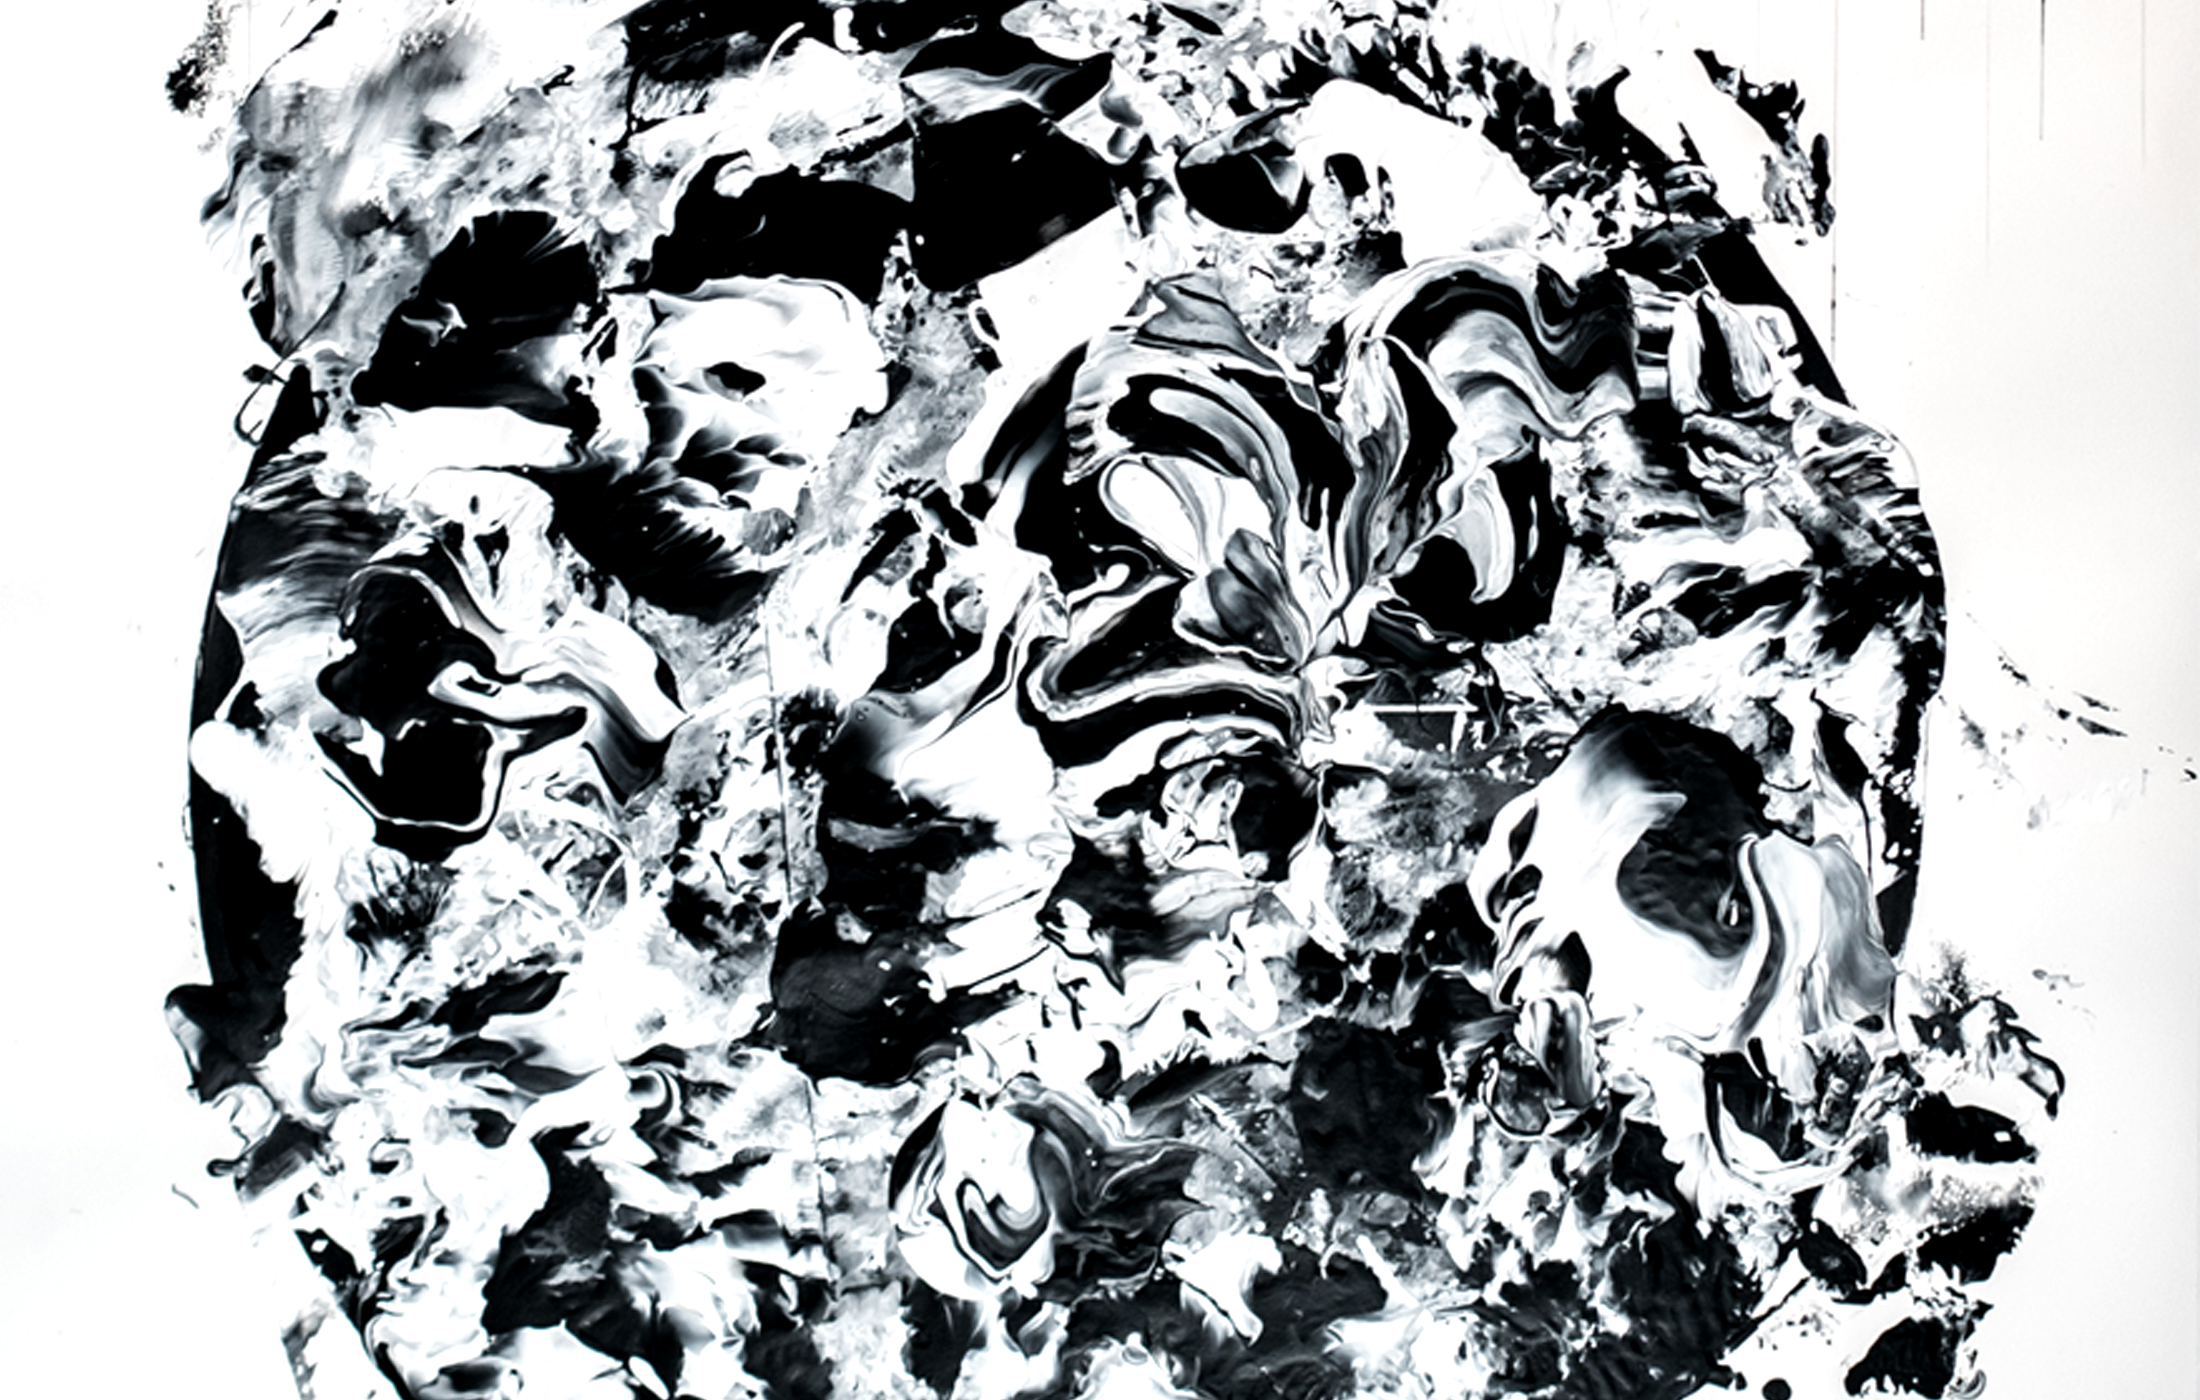 Agathe Toman Un battement par minute II Art Drawing Contemporary Artist French Paint Painting Black and white abstract bic